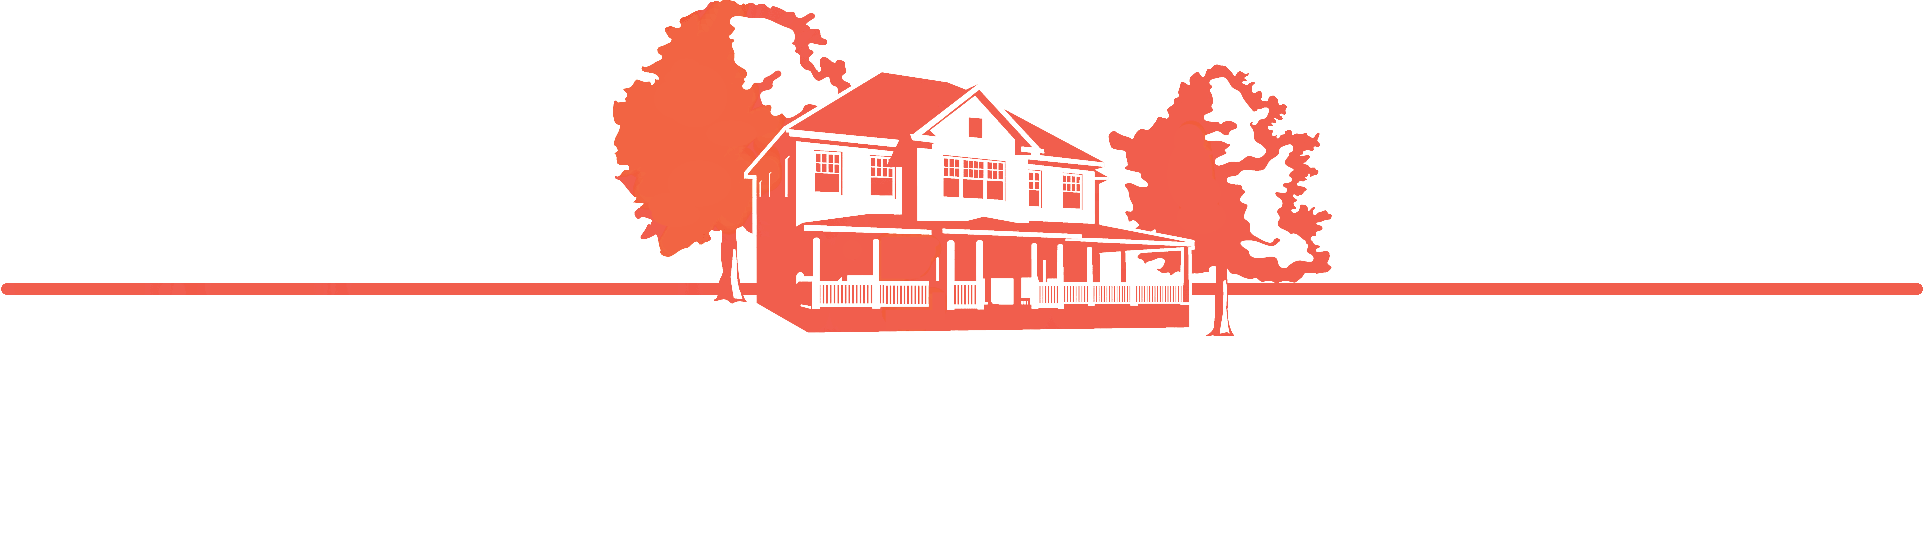 Beach house on stilts clipart vector download Carolina Country Homes vector download